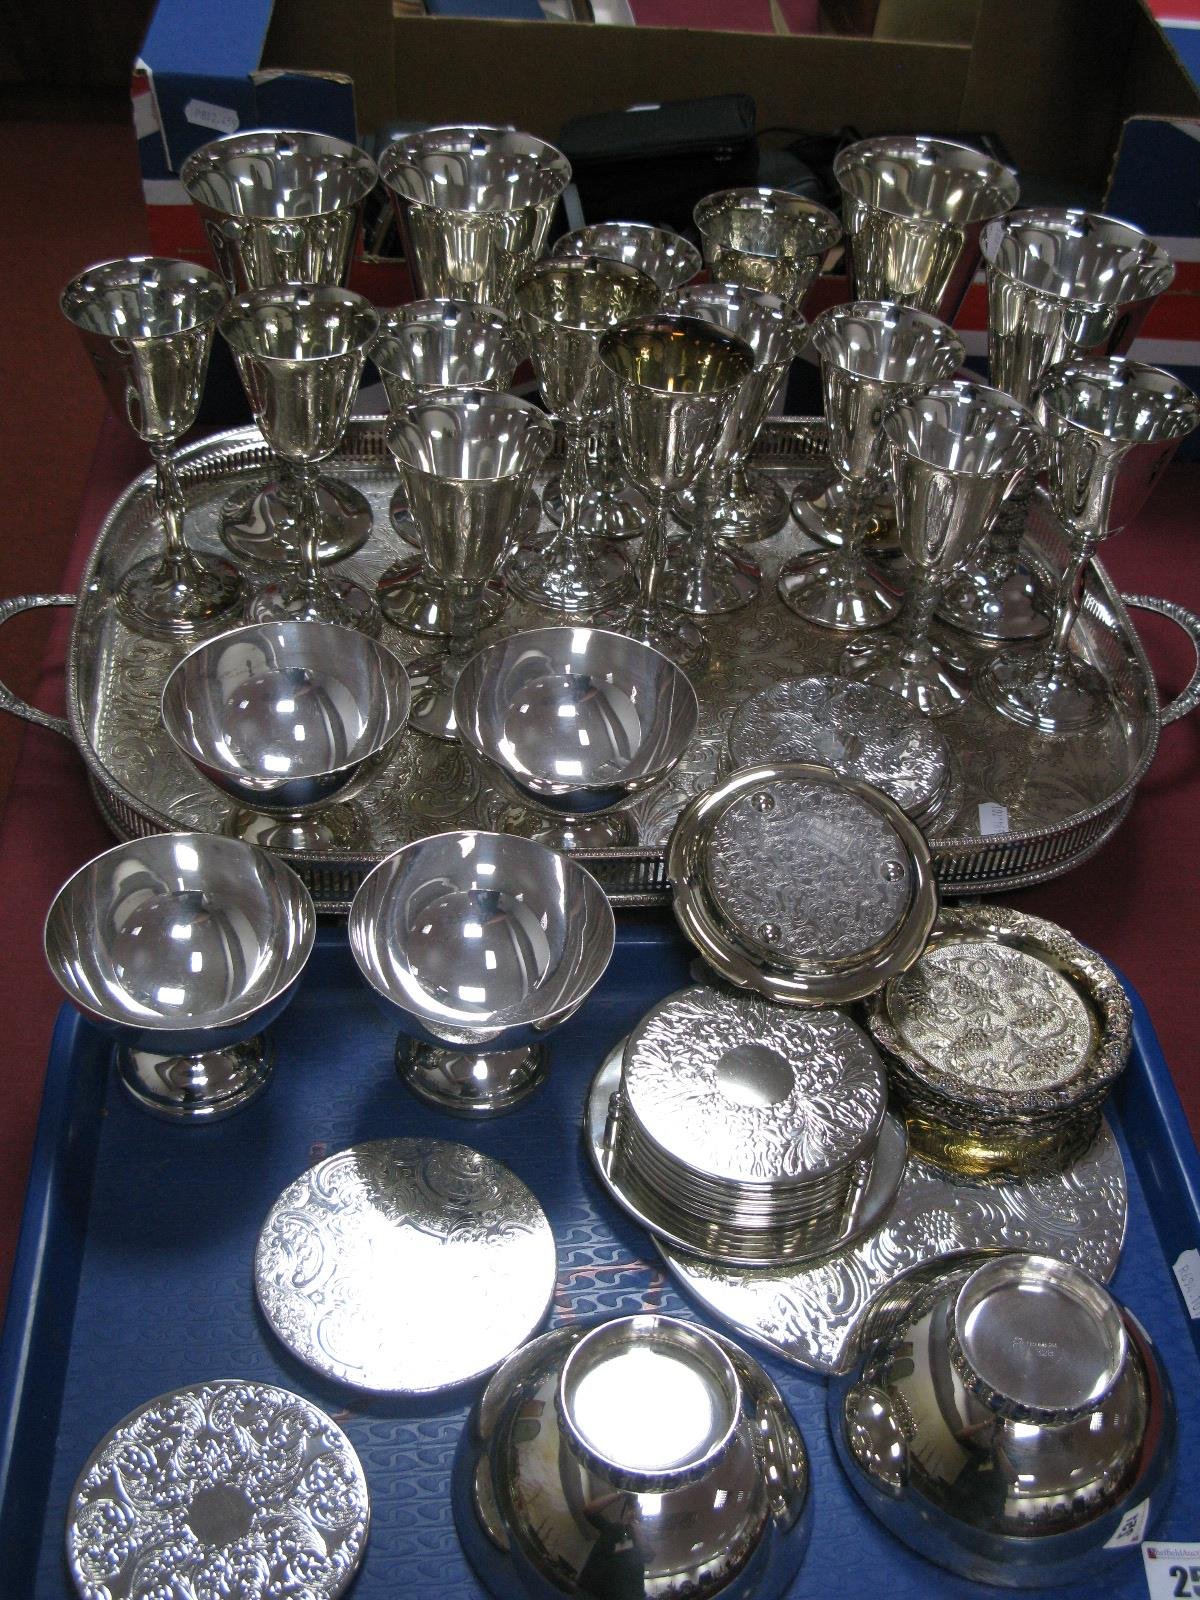 Lot 251 - Assorted Plated Goblets, rectangular twin handled tray, sundae dishes, place mats and coasters,